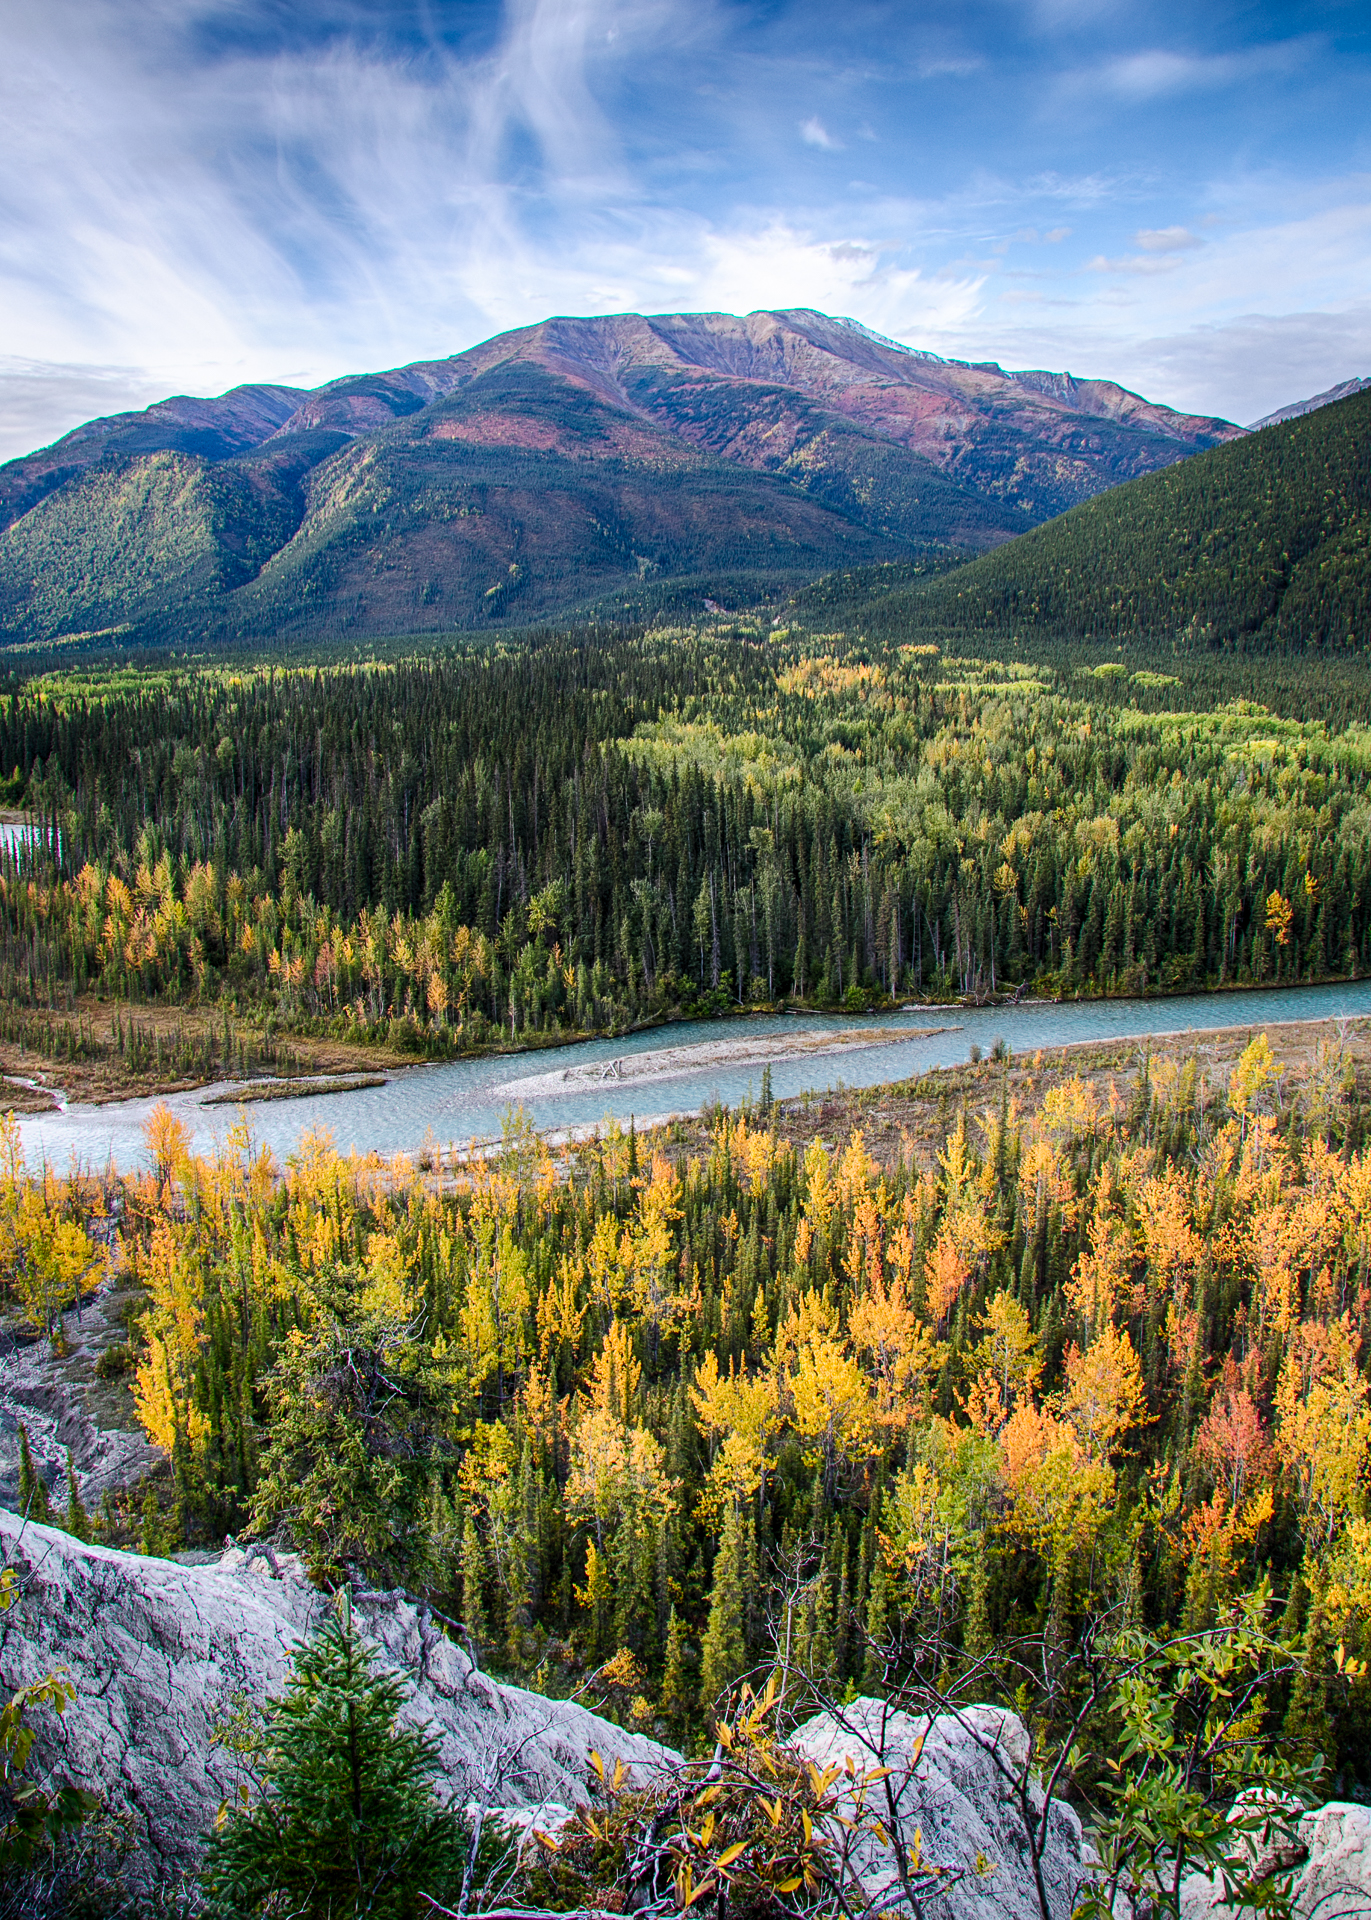 Fall colours in the valley, from the lookout.